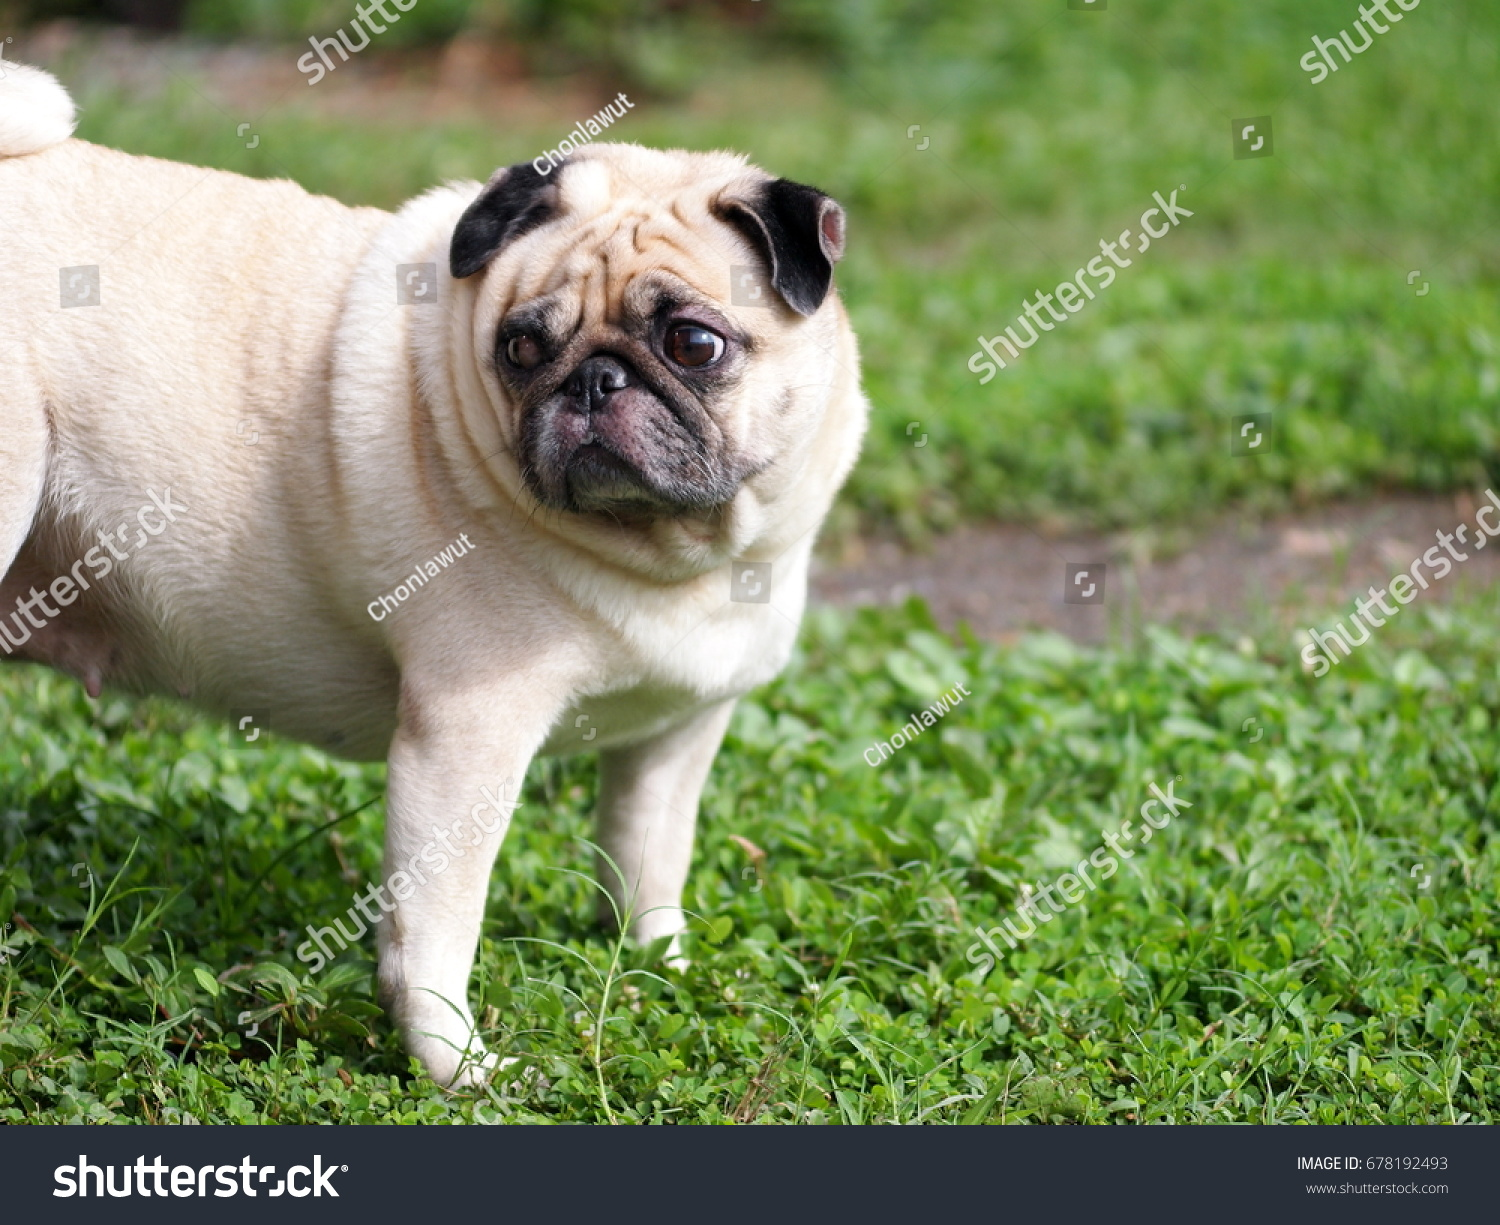 Portraits photo of a lovely white fat cute pug dog playing outdoor making sad and lonesome